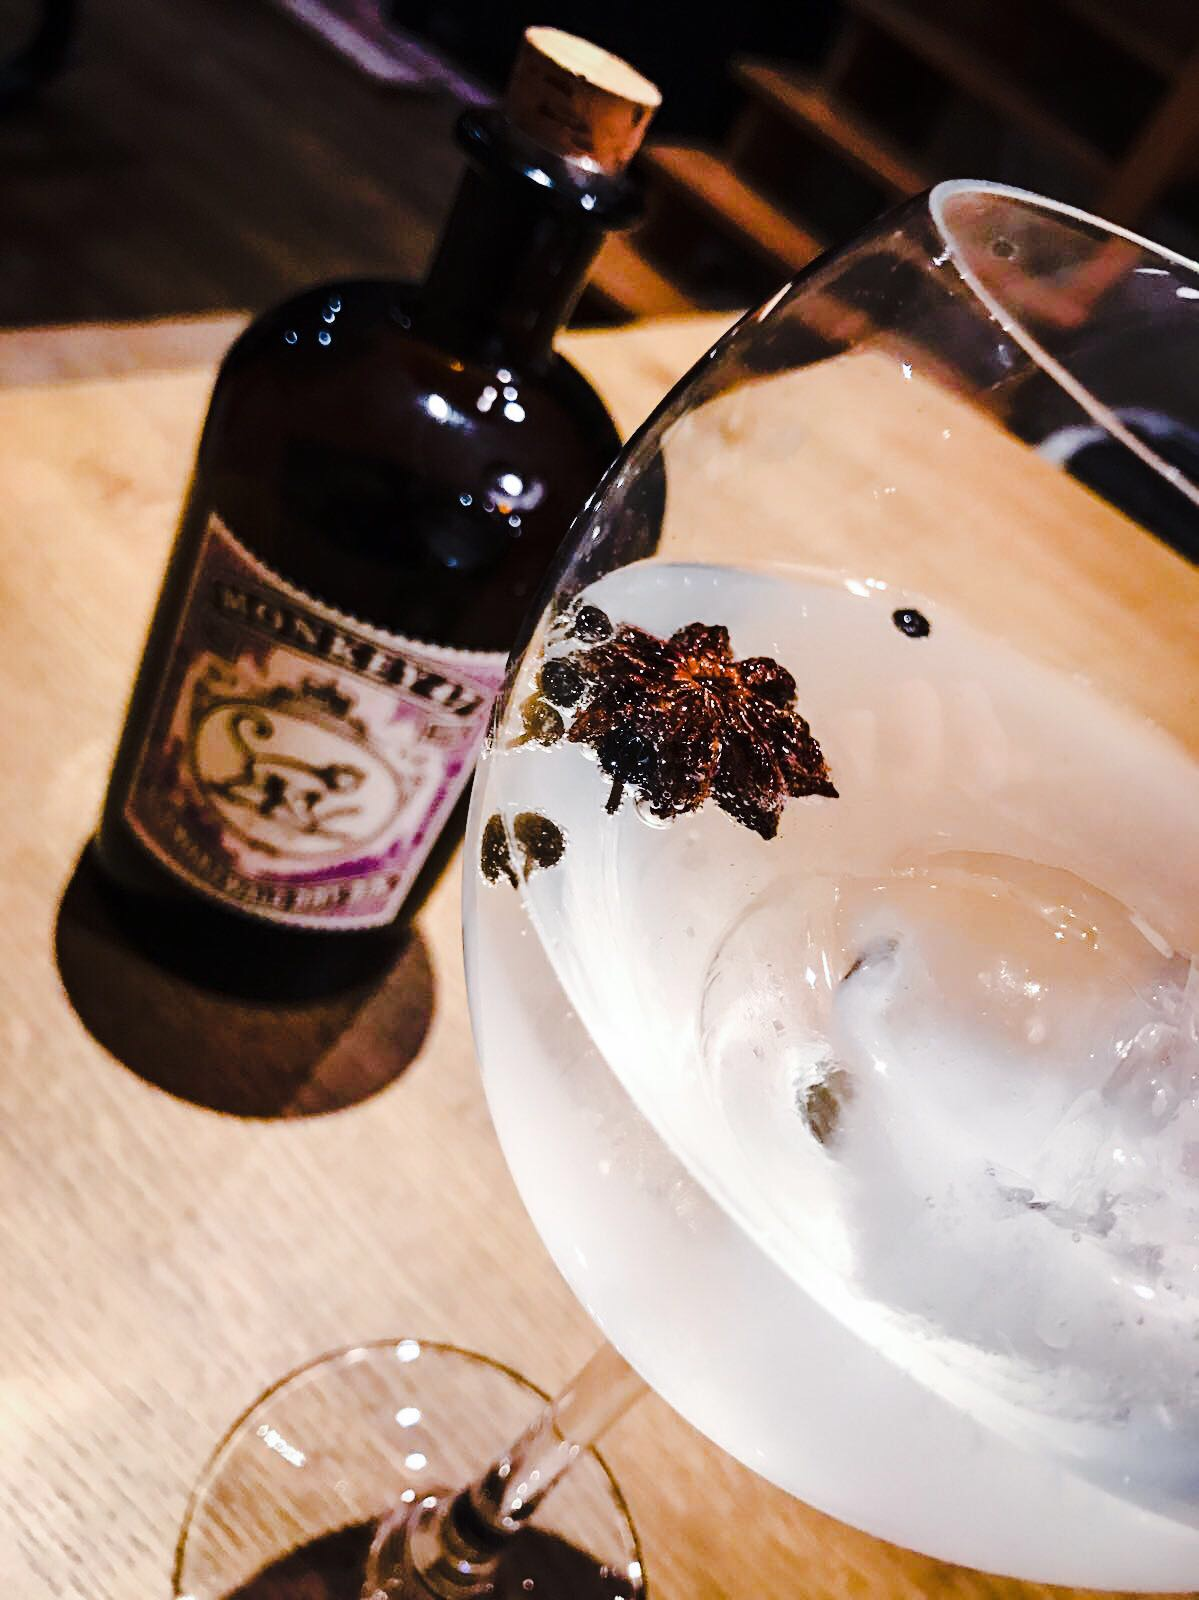 Soorten Tonic Monkey 47 Gin Duitsland Theperfectserve Gin And Gin